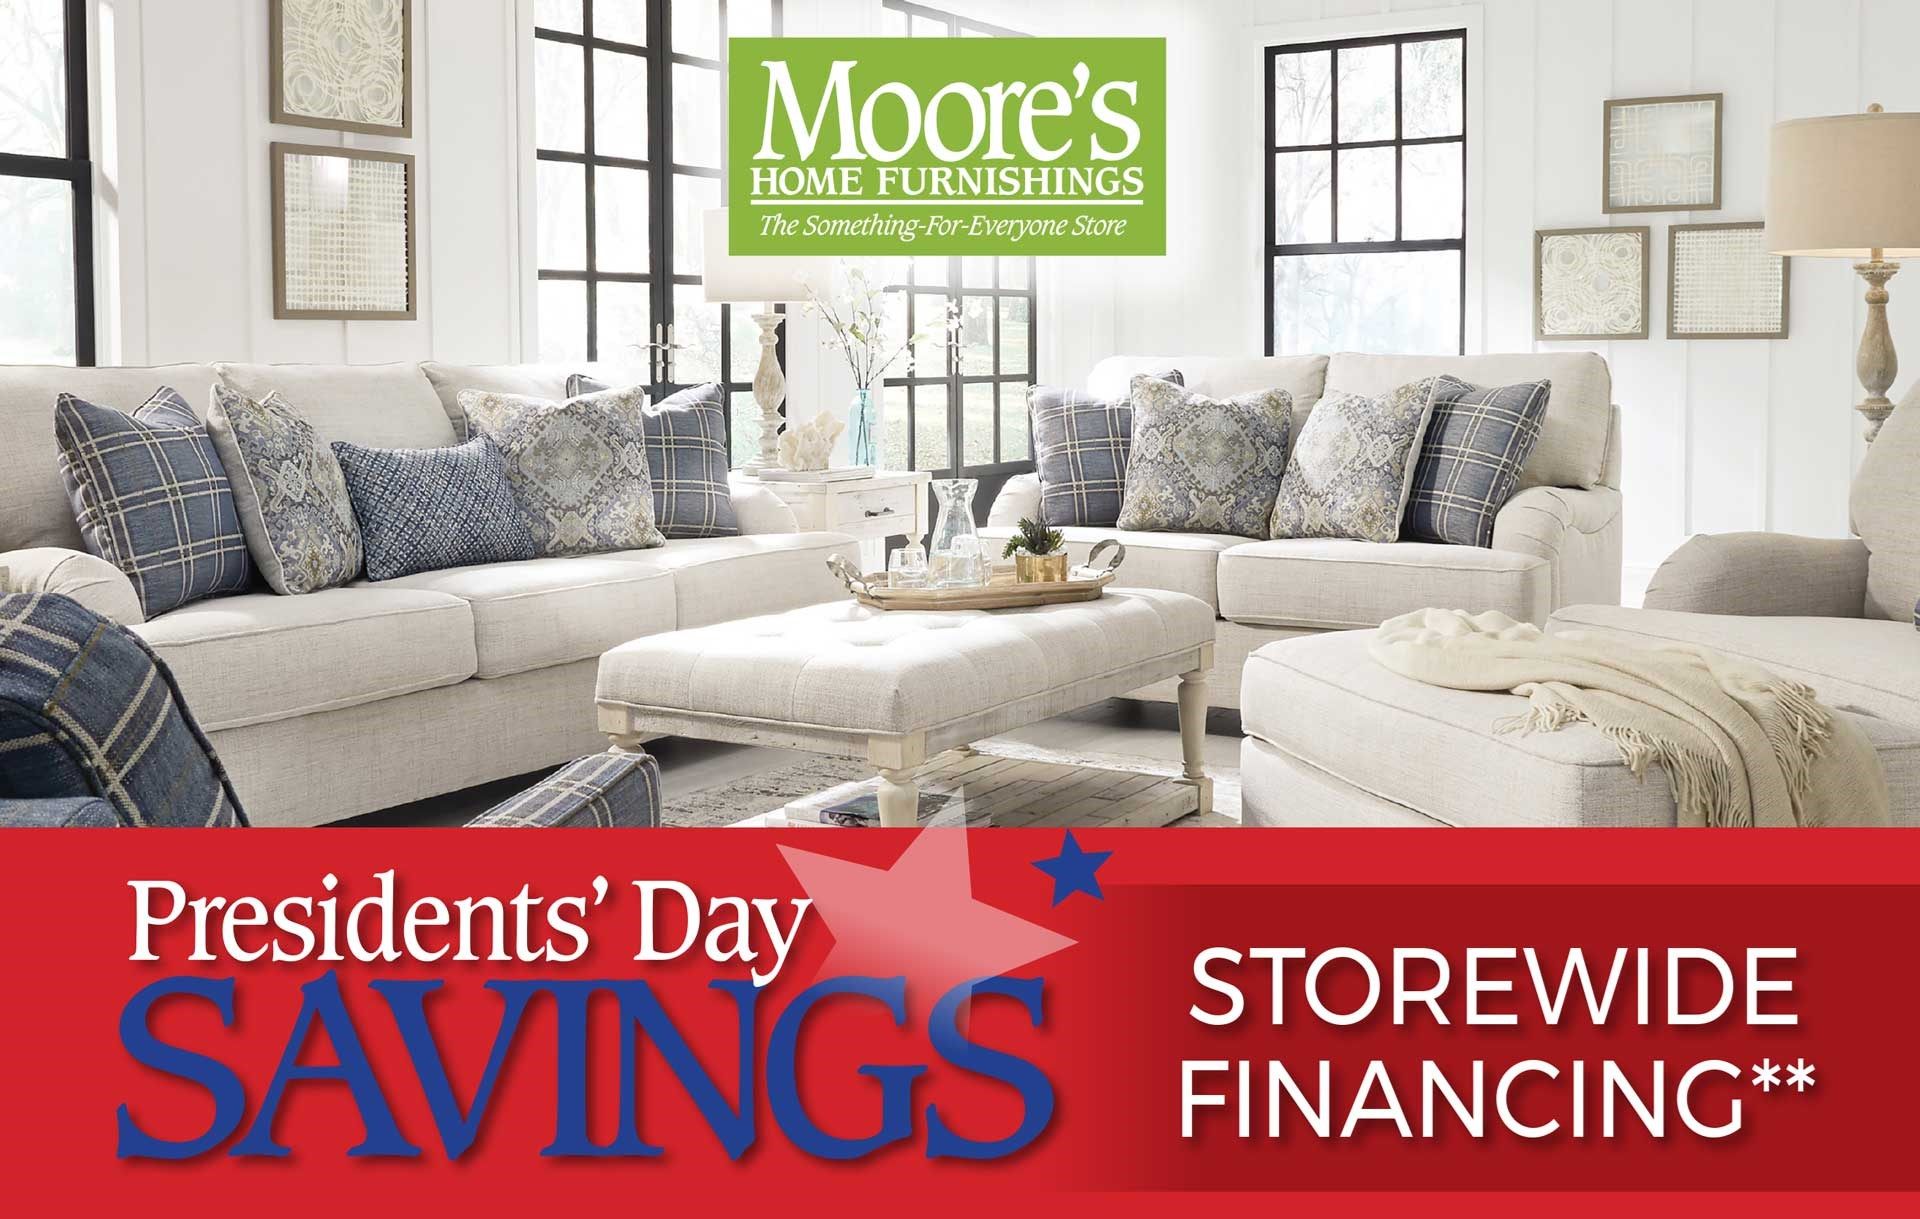 President's Day Sale Going on Now! Discounts Equal to the Sales Tax plus 12 Months Interest Free Financing!